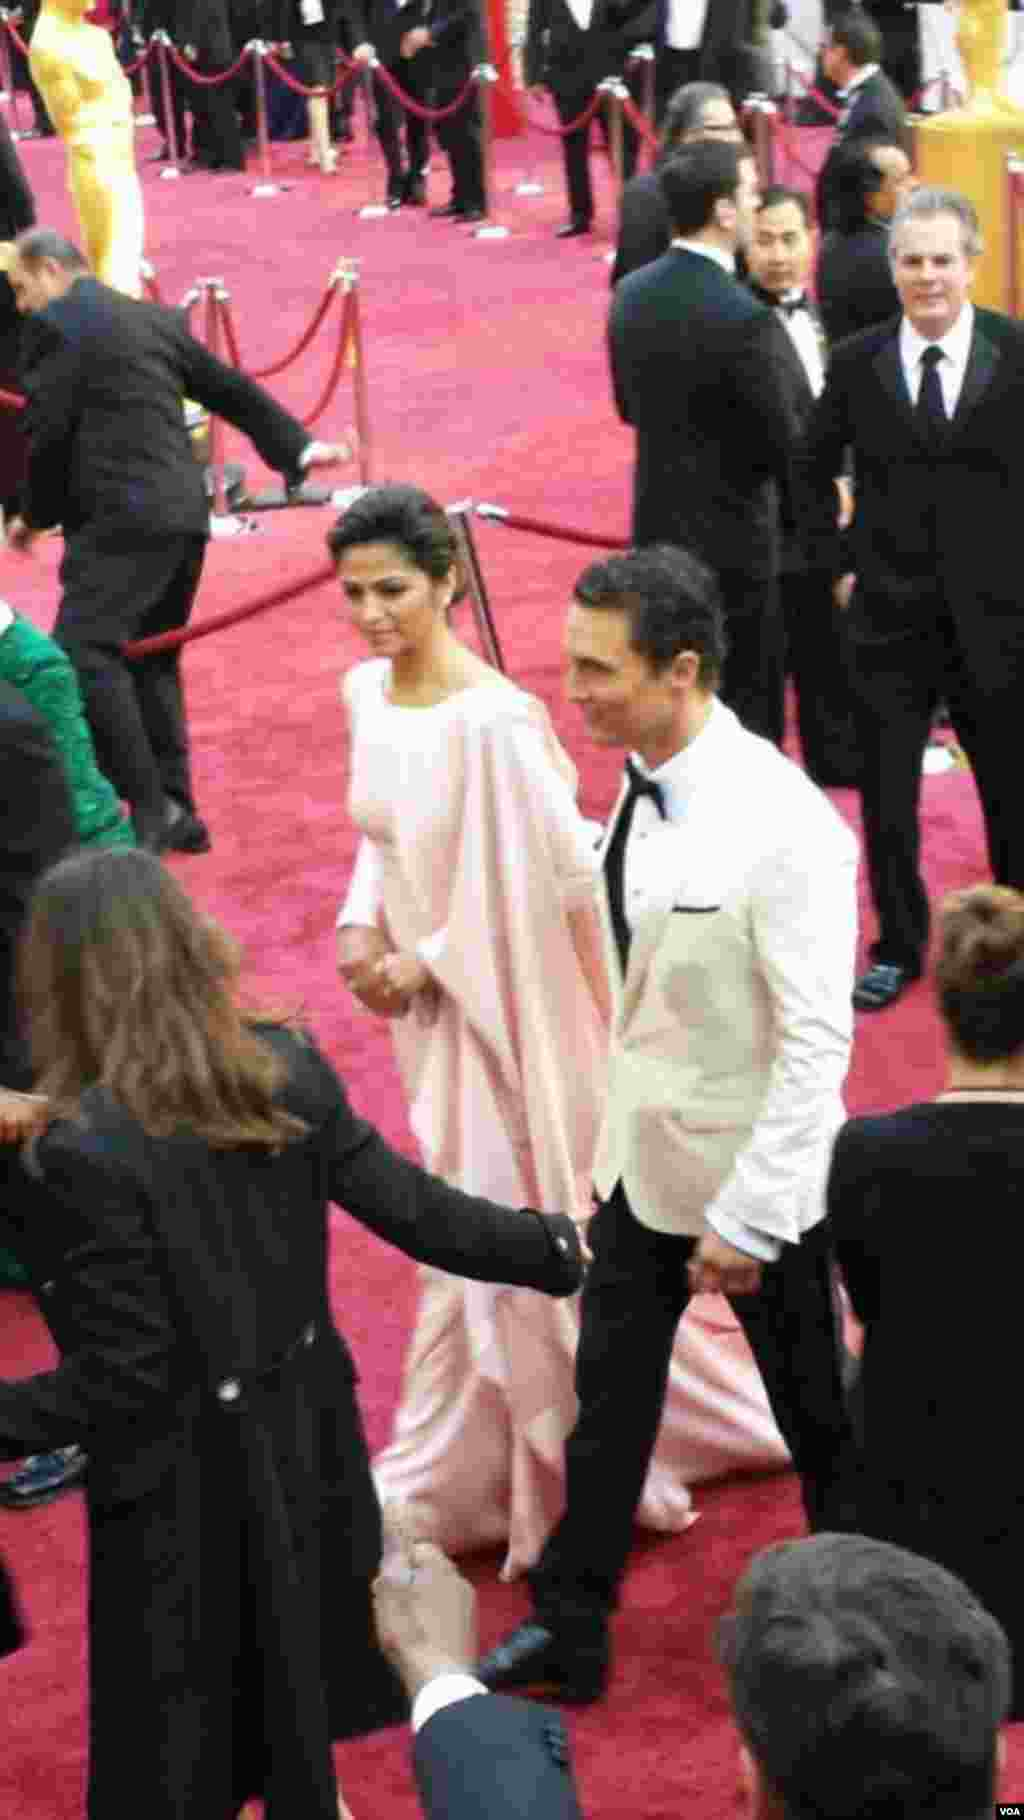 Matthew McConaughey bersama istri di red carpet Academy Awards ke-86, Dolby Theater, Los Angeles, California, 2 Maret 2014.